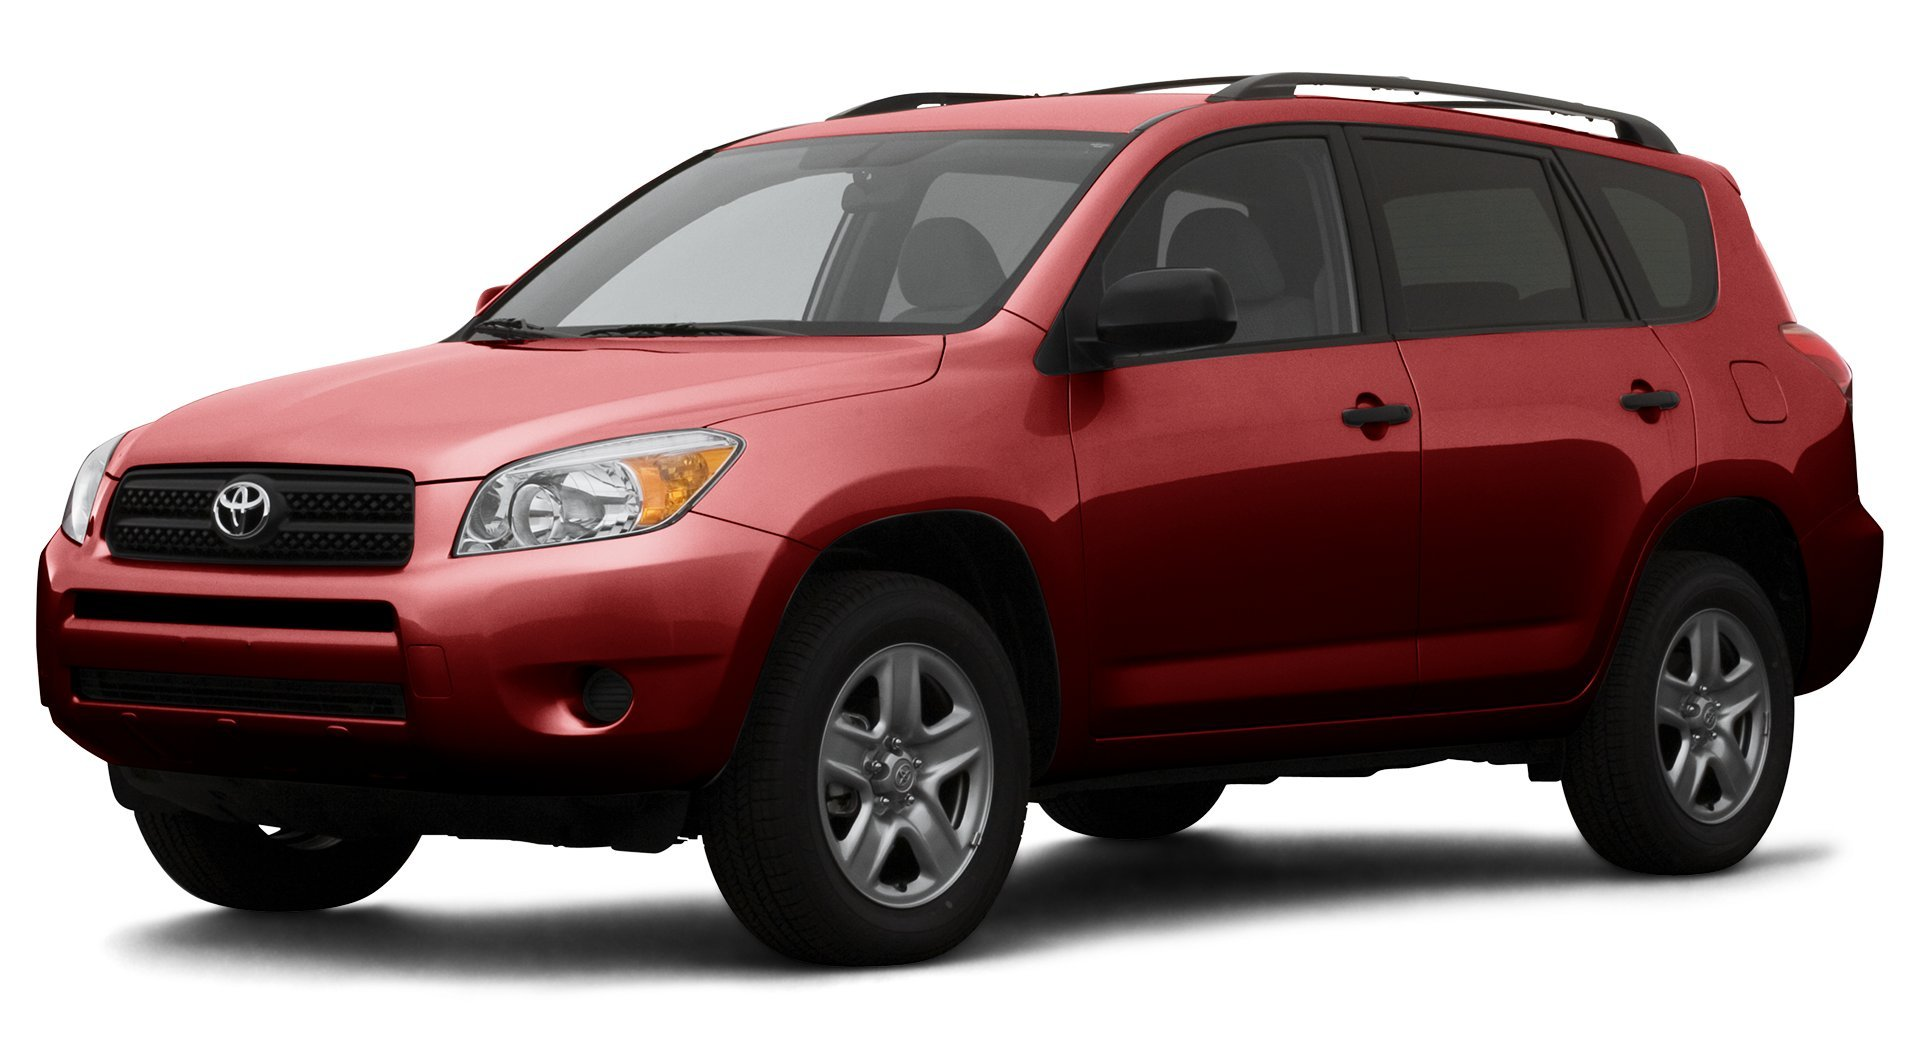 2007 toyota rav4 reviews images and specs vehicles. Black Bedroom Furniture Sets. Home Design Ideas